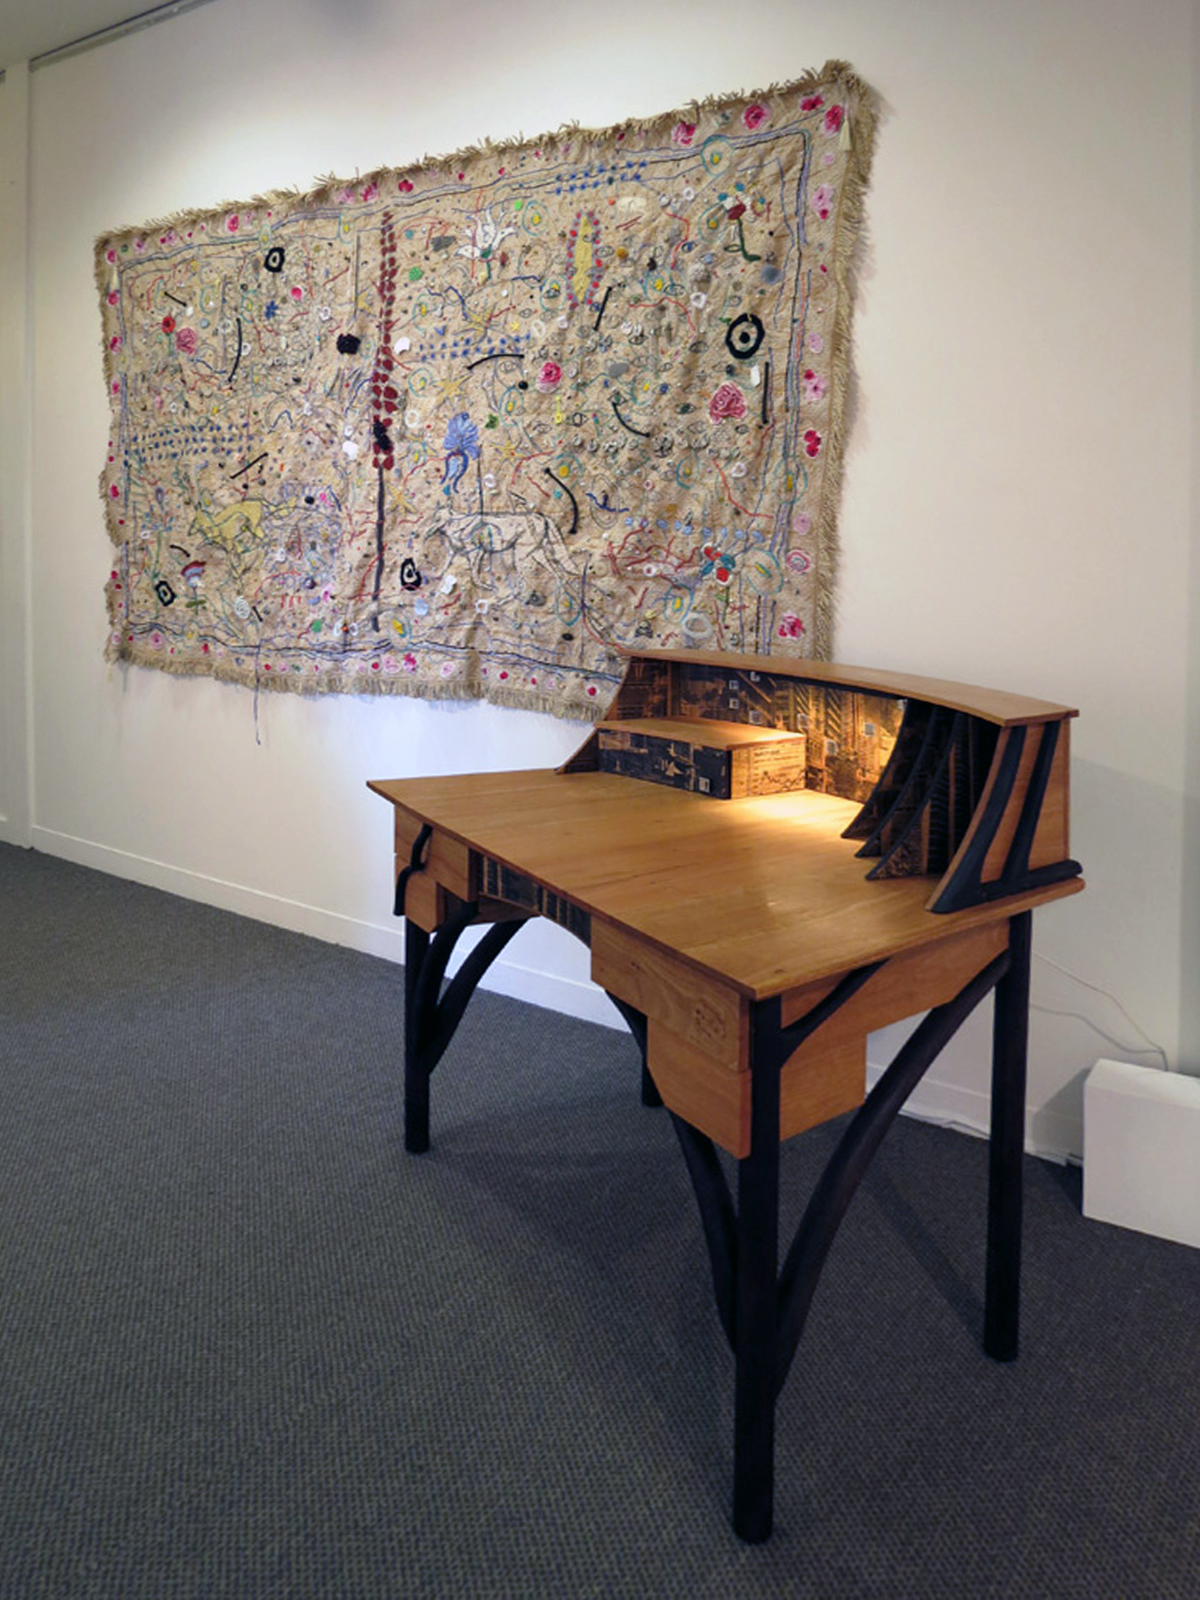 13.  I Am Filled With Objects , Susan Flavell, couch cover, mixed media, $5500  14.  Lost in the Wood , Megan Christie, Blackbutt, Marri, charred finish, screen printed veneer, cast copper figures, LED light, $6500